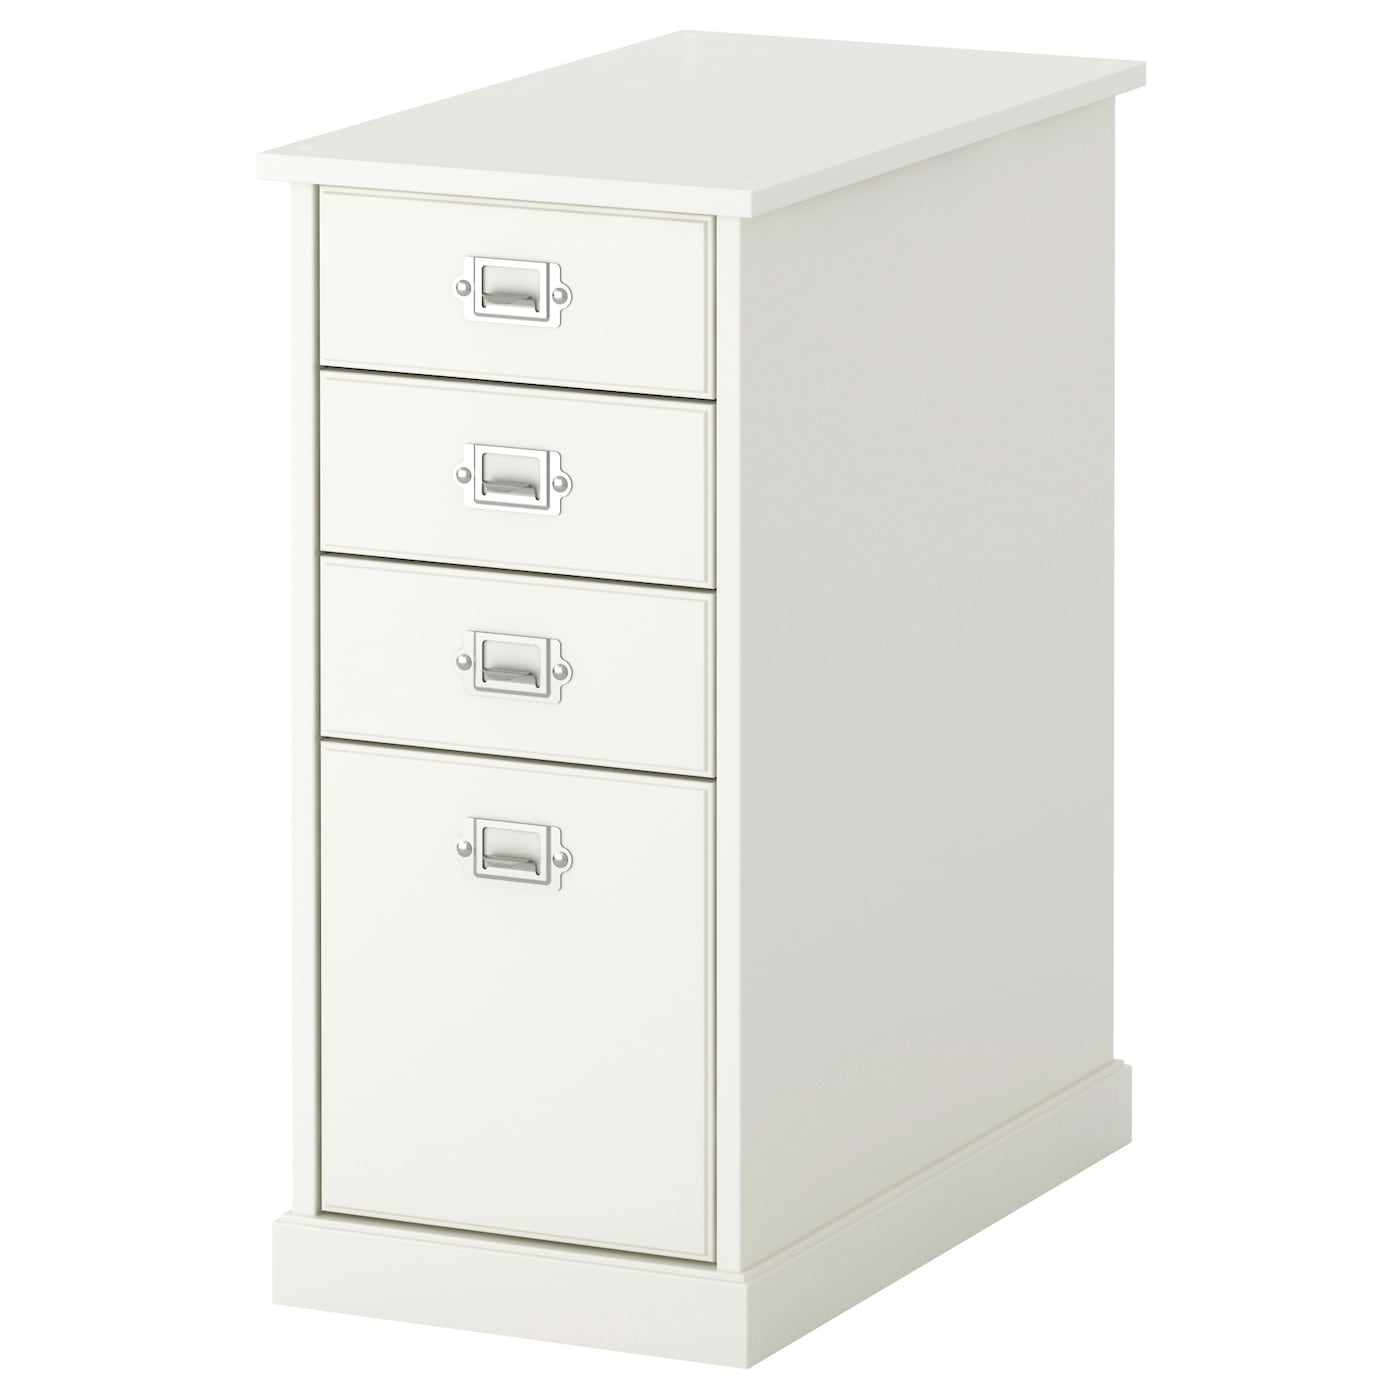 Klimpen drawer unit white 33x70 cm ikea - Cassettiera ikea ufficio ...